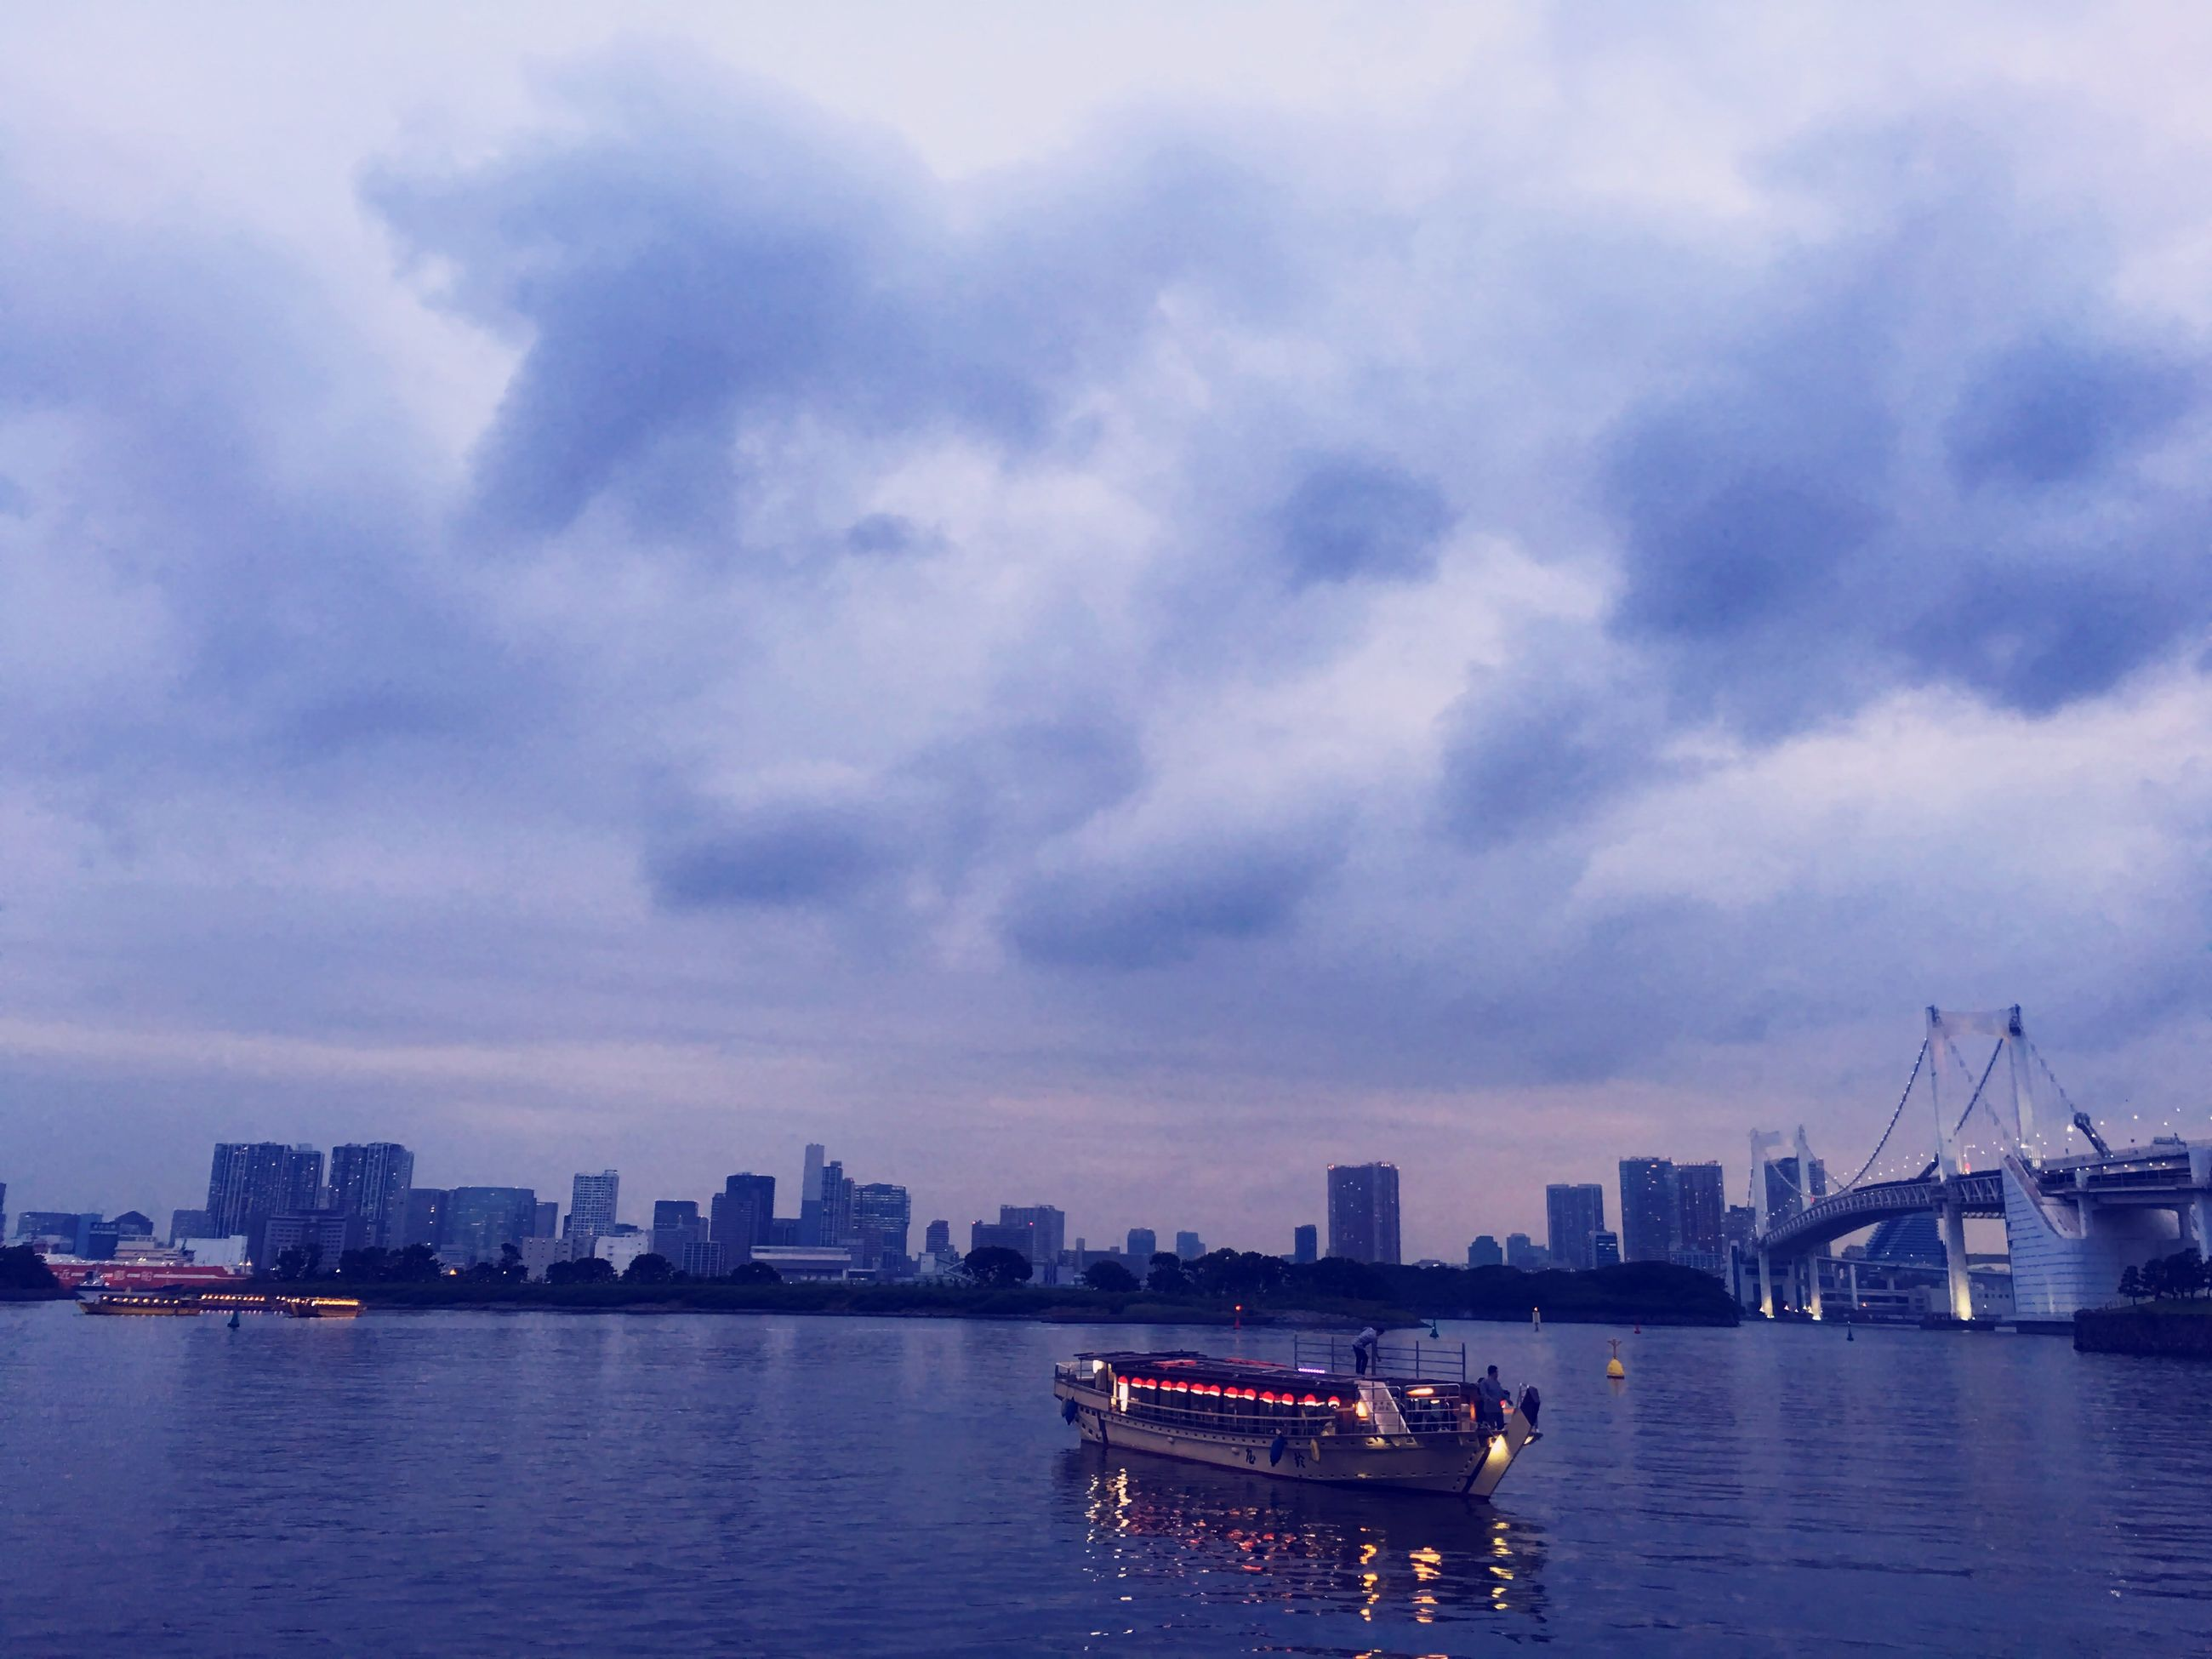 water, nautical vessel, transportation, city, waterfront, boat, mode of transport, building exterior, architecture, built structure, sky, cloud - sky, river, tranquil scene, growth, tranquility, sea, urban skyline, calm, day, skyscraper, outdoors, scenics, nature, city life, cloudy, no people, tall - high, beauty in nature, development